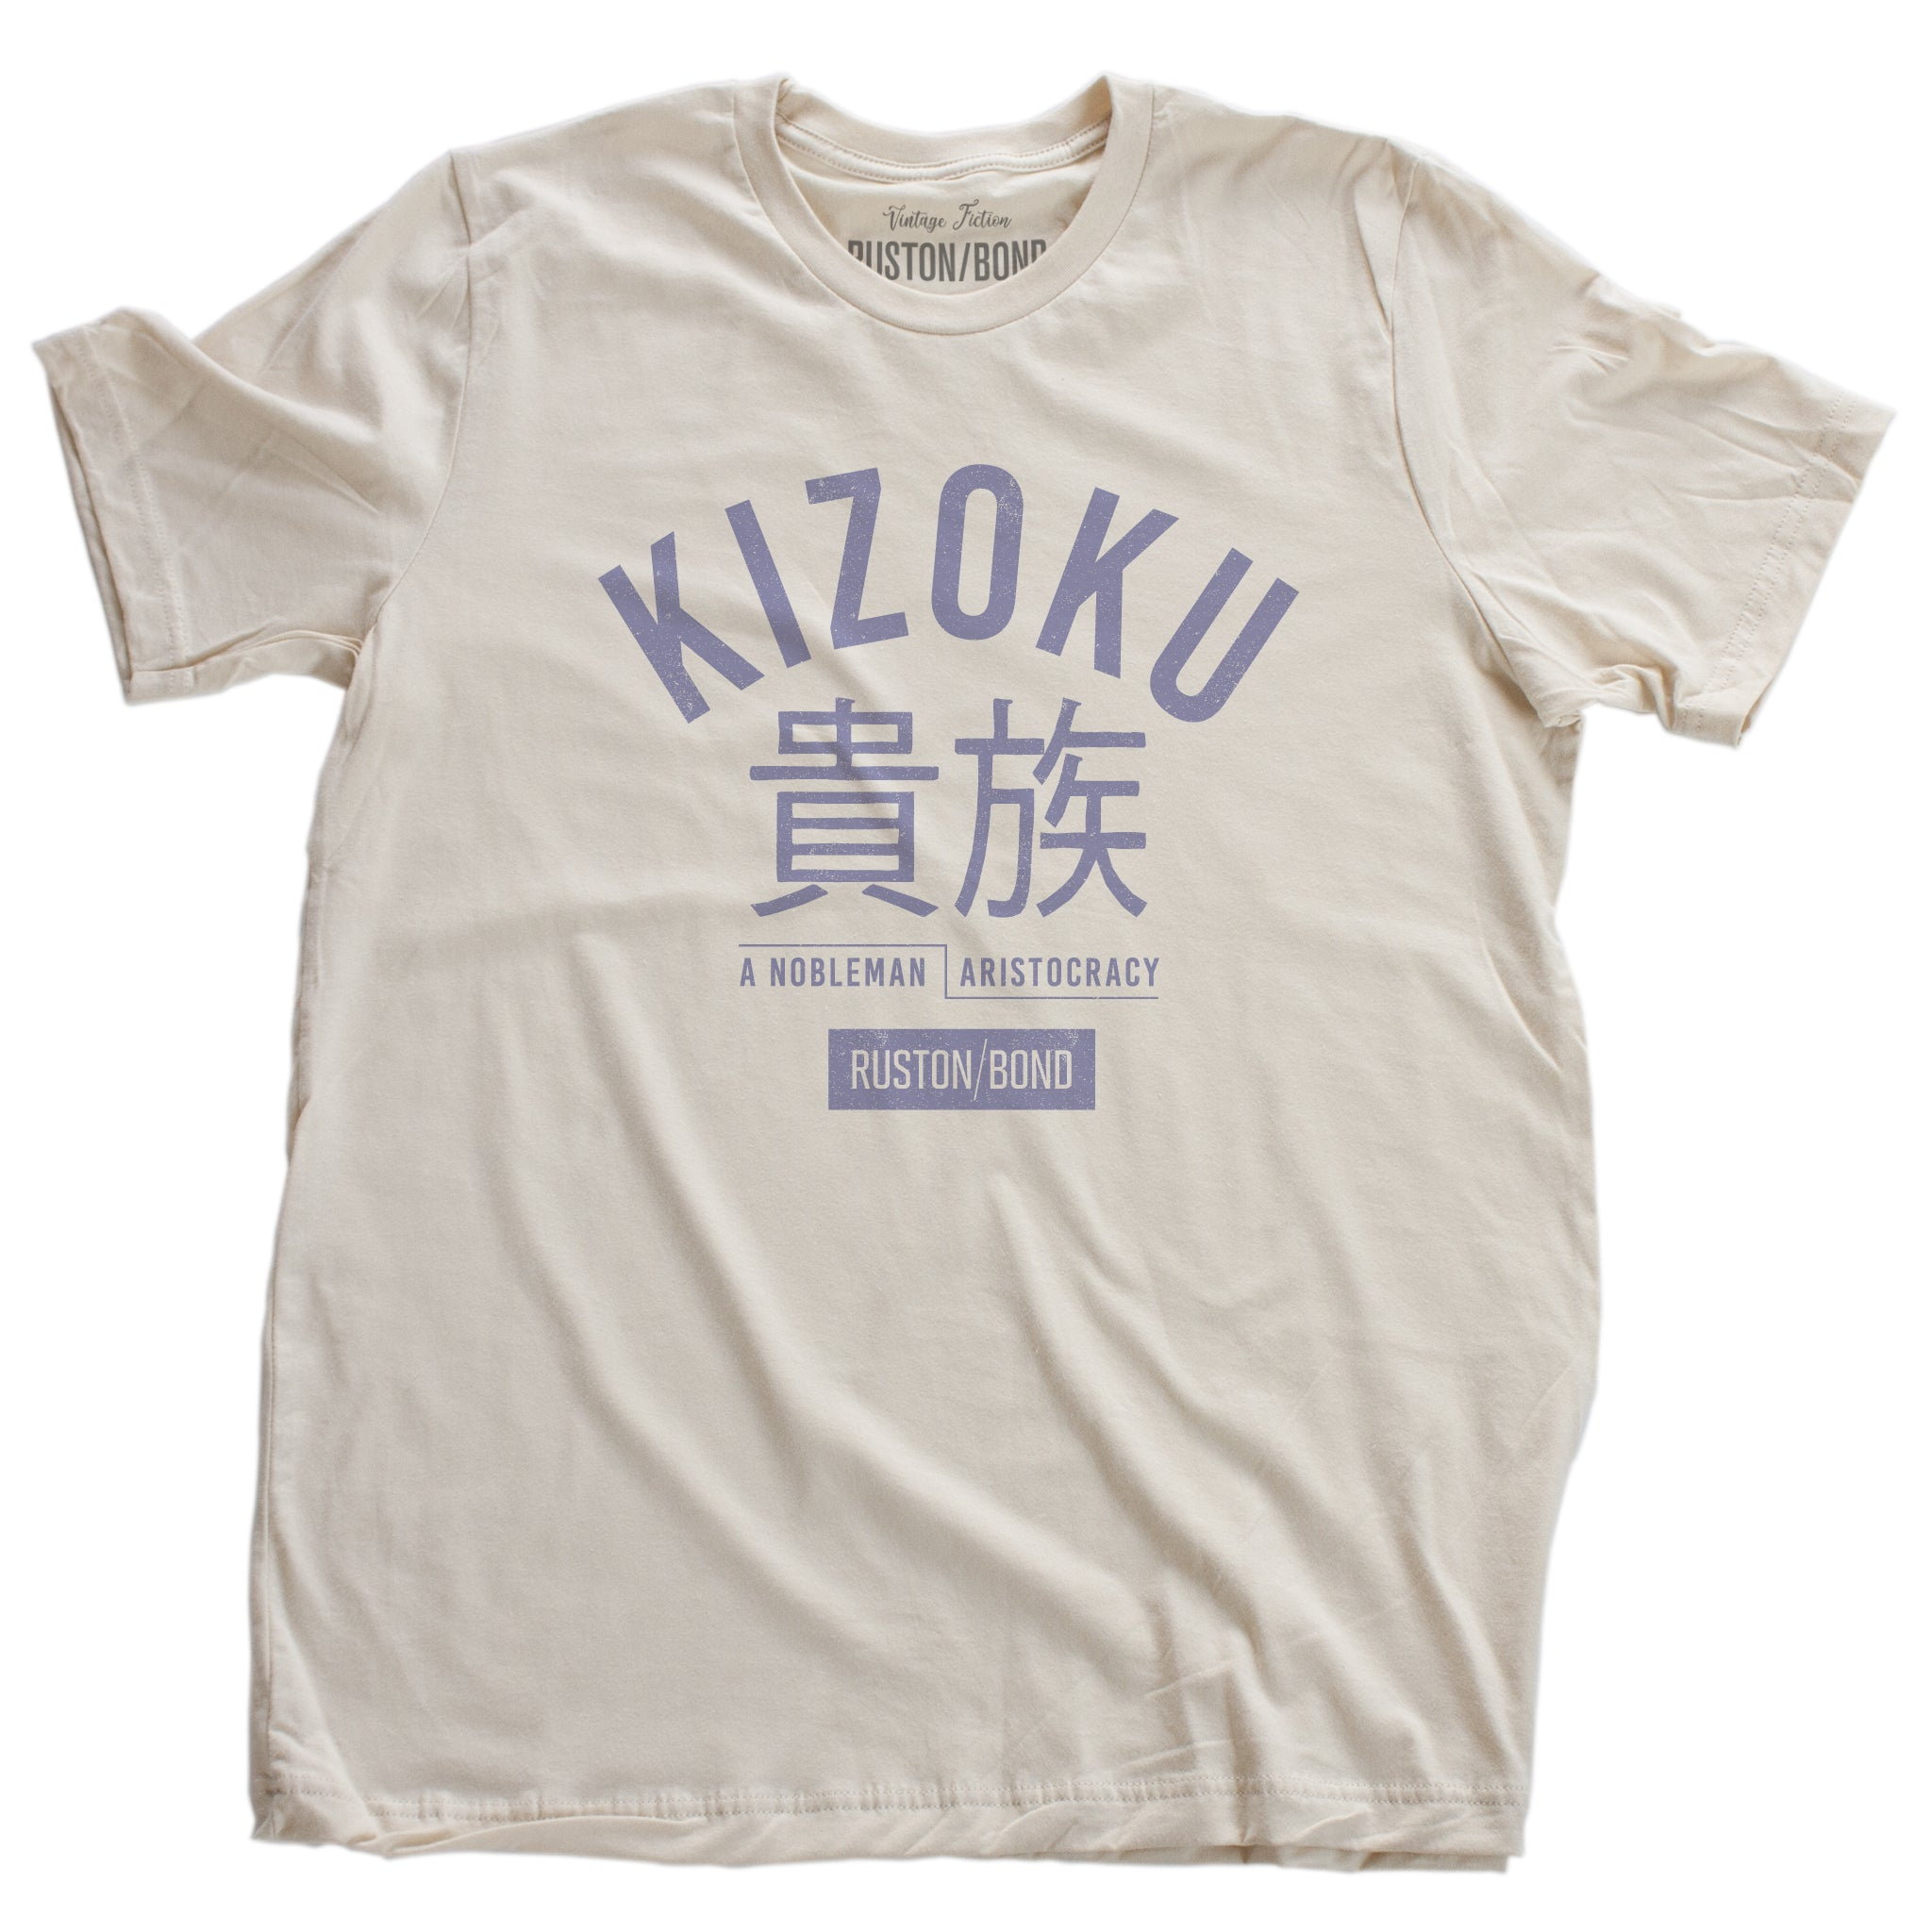 "A retro fashion t-shirt in Soft Cream with the bold typographic of the Japanese word ""KIZOKU"" and ""a nobleman / aristocracy"" below the Japanese characters. By the fashion brand Ruston/Bond, from wolfsaint.net."